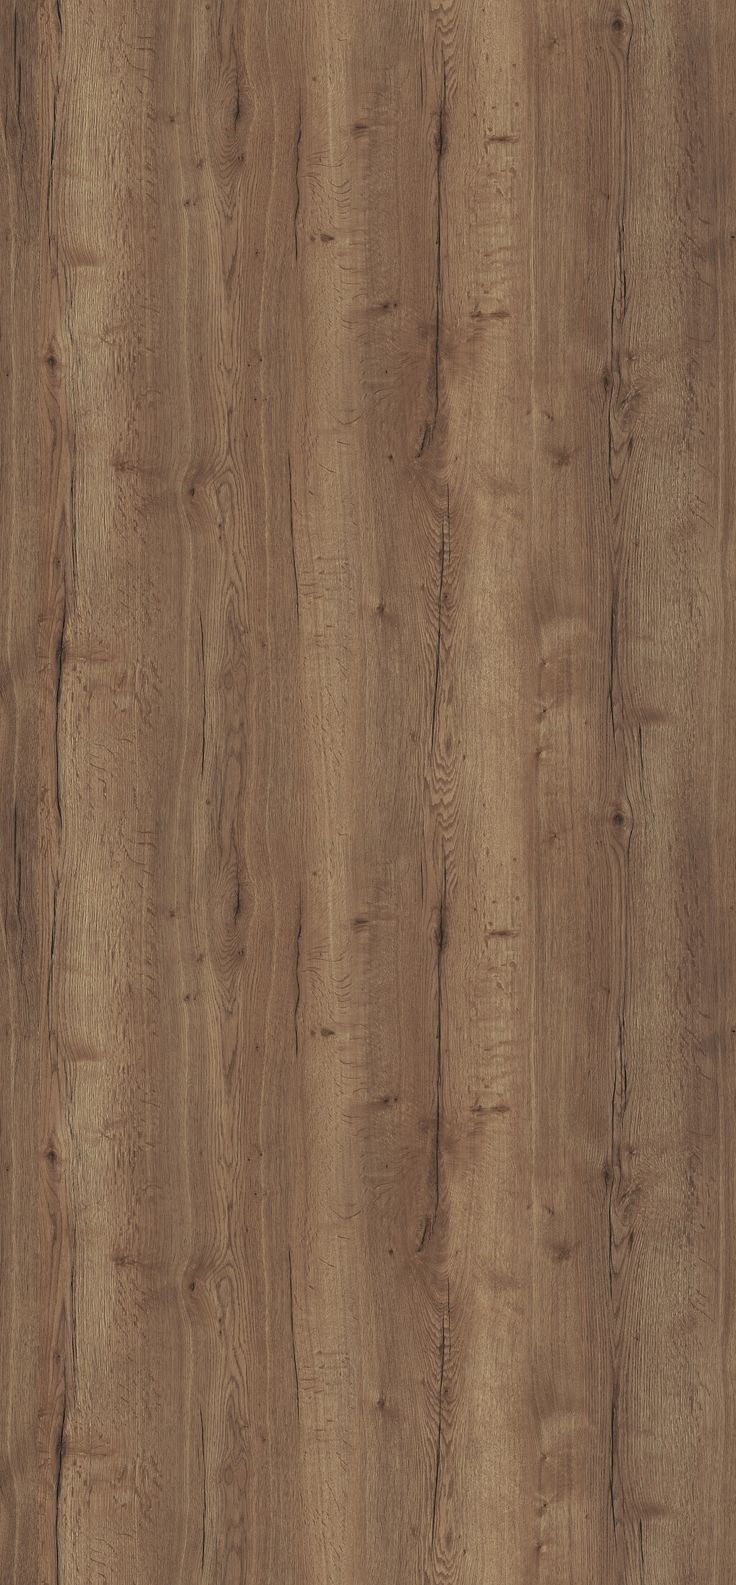 H1180 ST37 Tobacco Halifax Oak - A rustic style worktop that beautifully replicates the appearance of solid smoked oak.